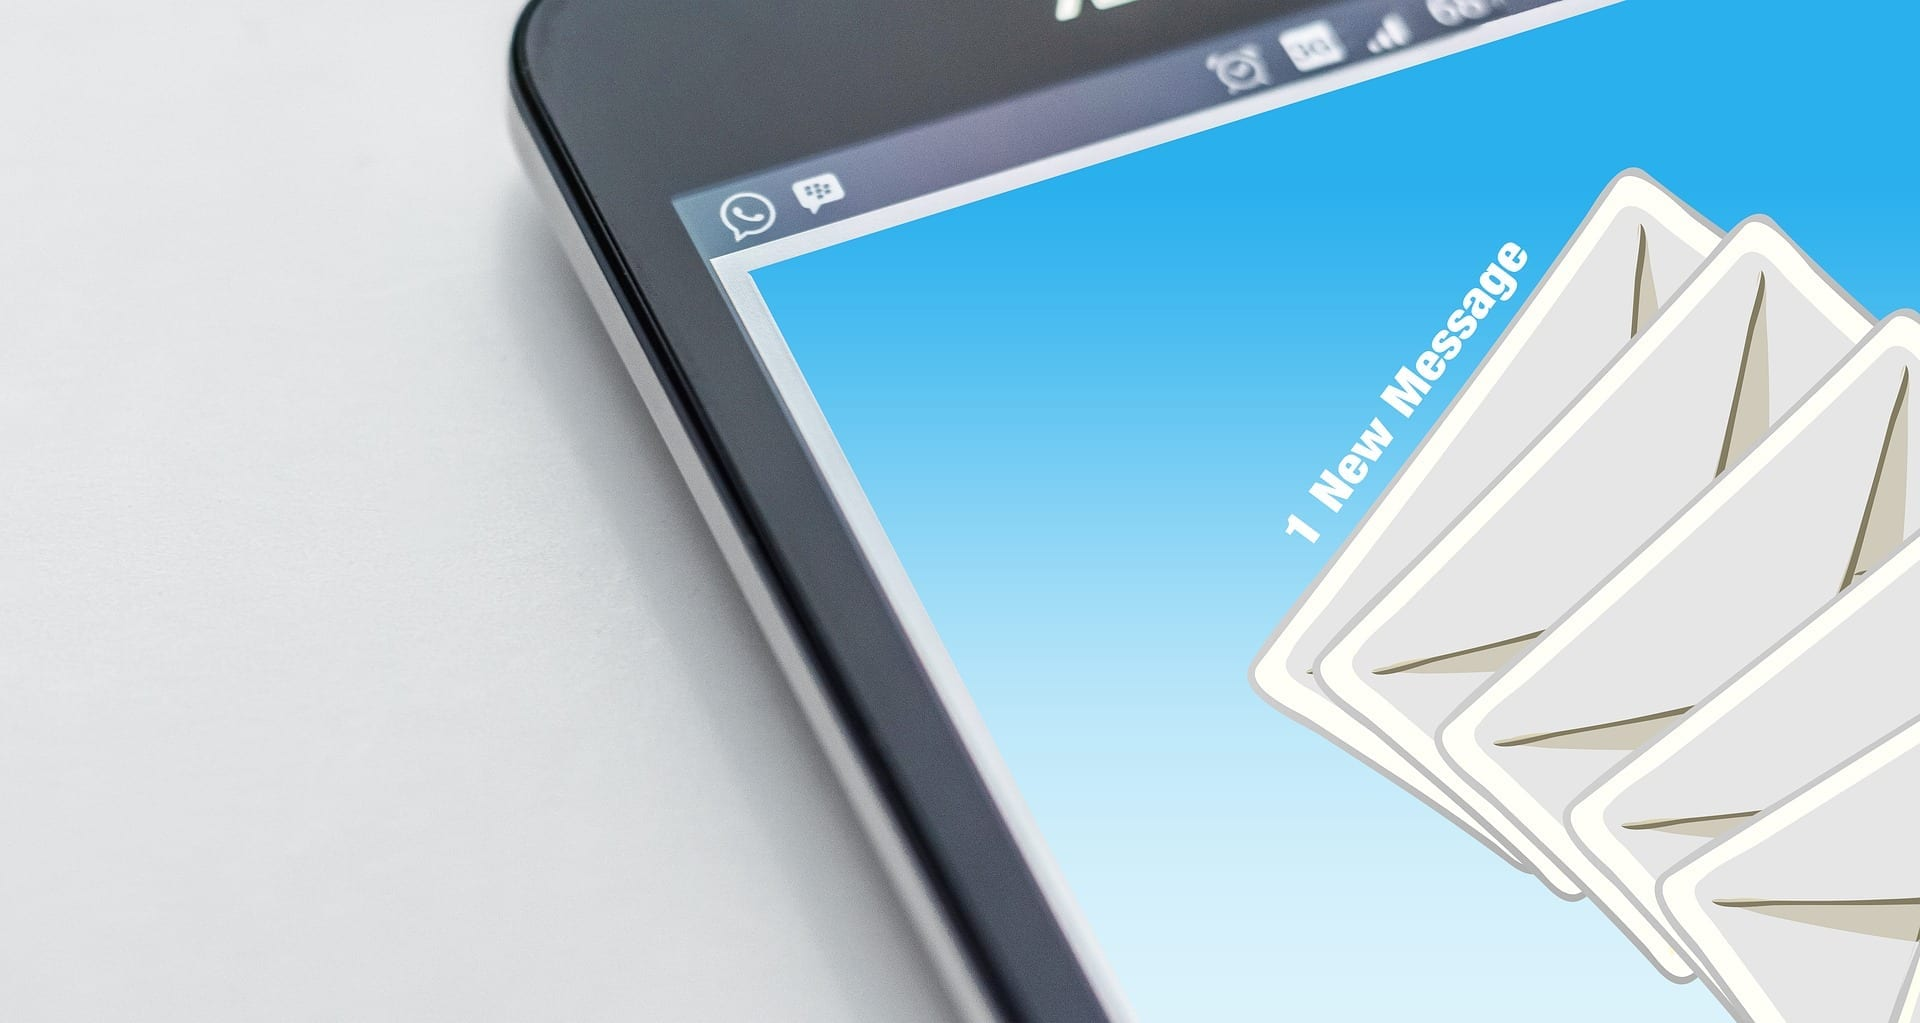 fight-back-against-email-spoofing-improve-email-deliverability-with-spf-sender-policy-framework.jpg